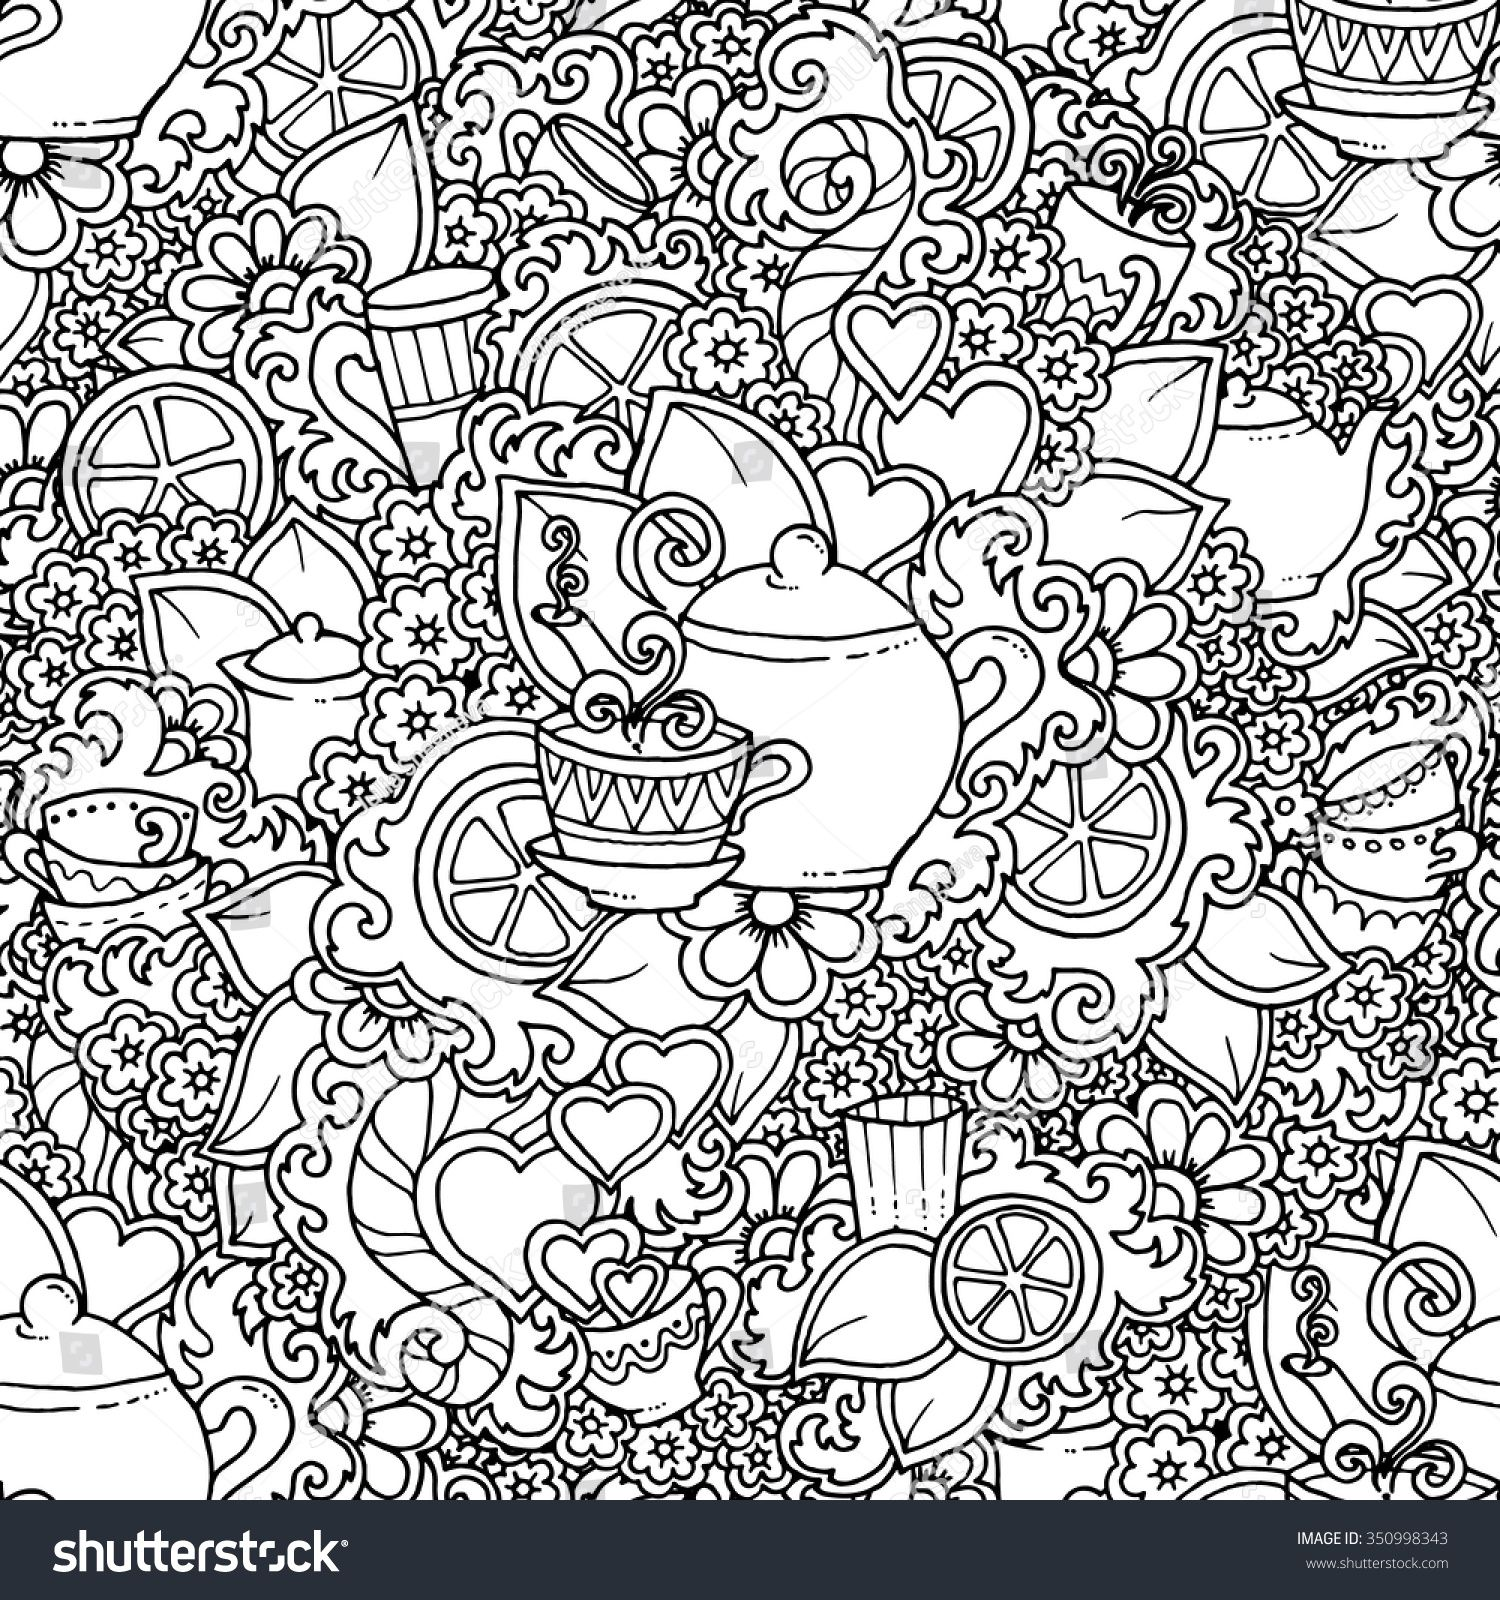 Pin On Coloring Patterns